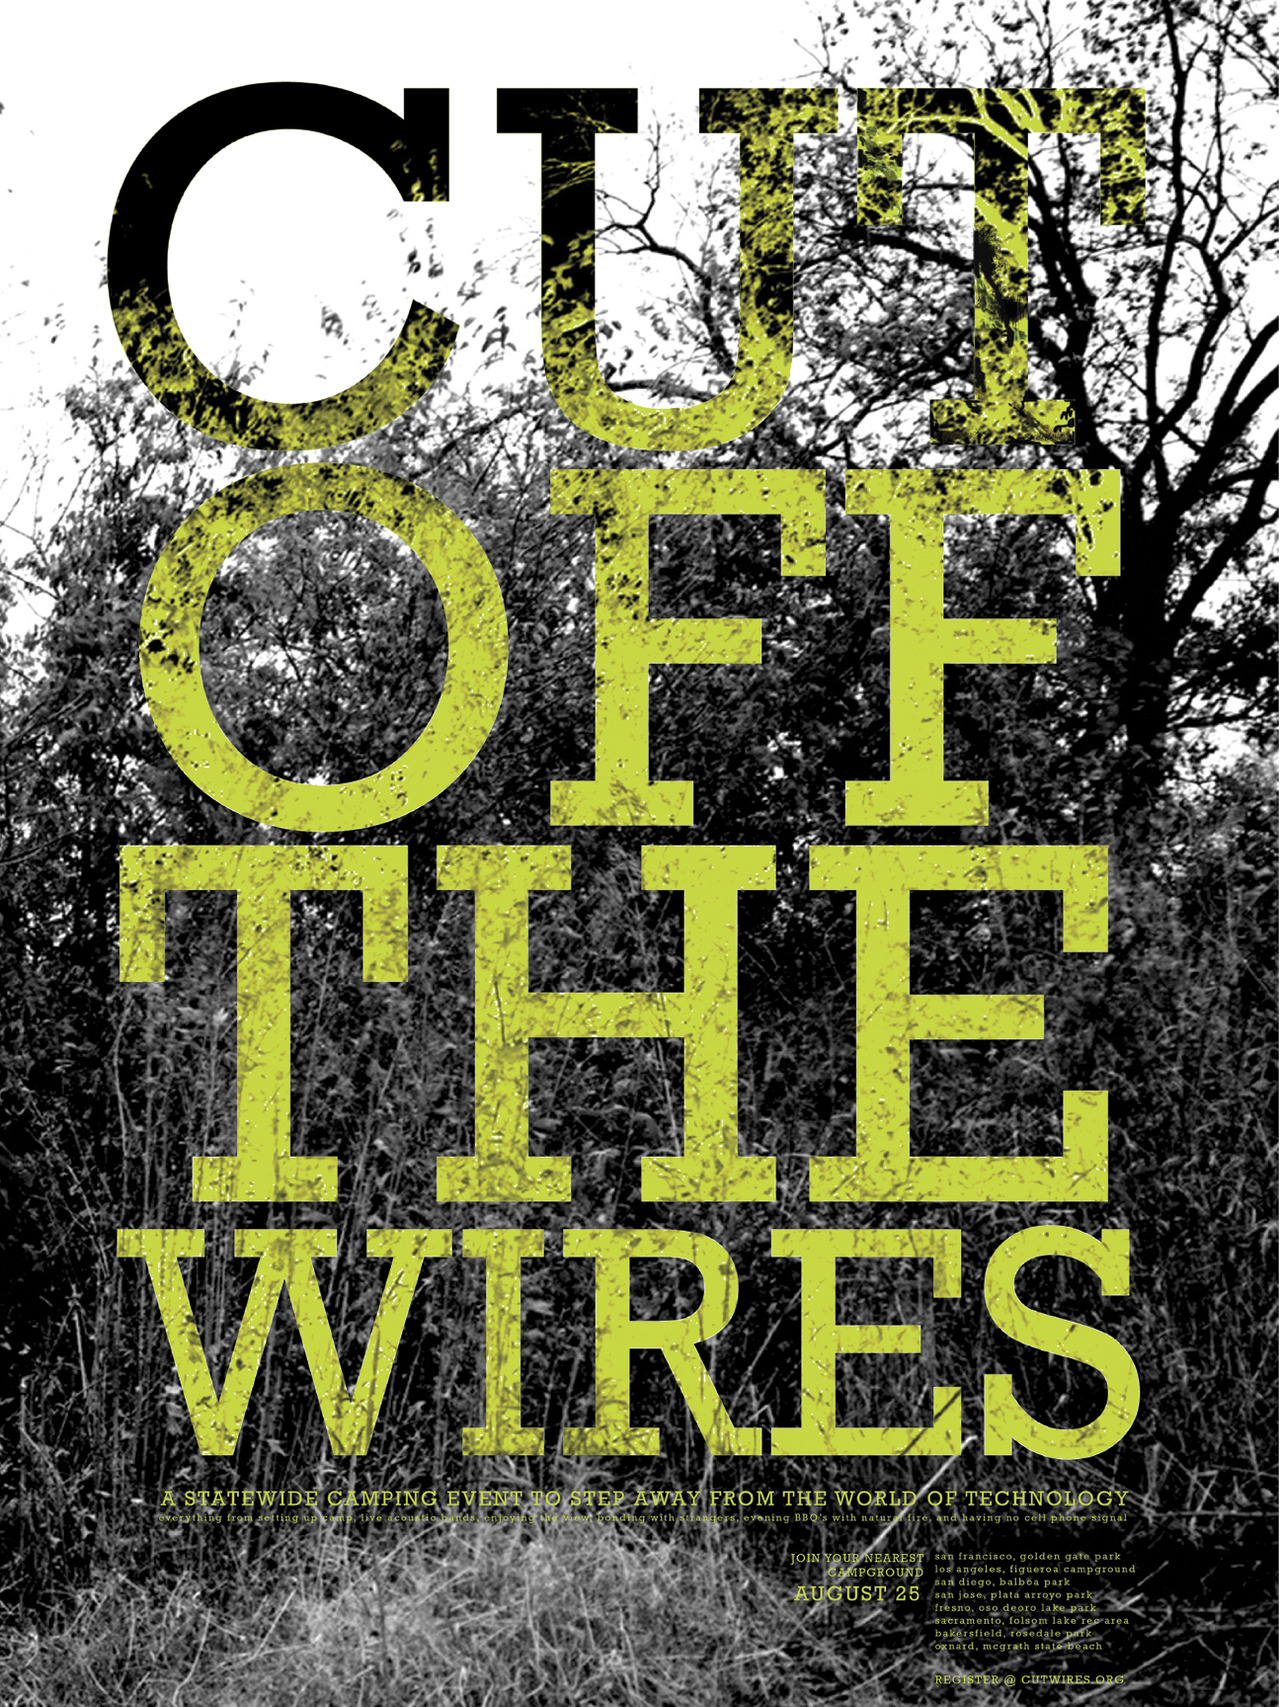 CUT OFF THE WIRES   A poster for a hypothetical summer campout festival in California featuring music, art, food, and education.